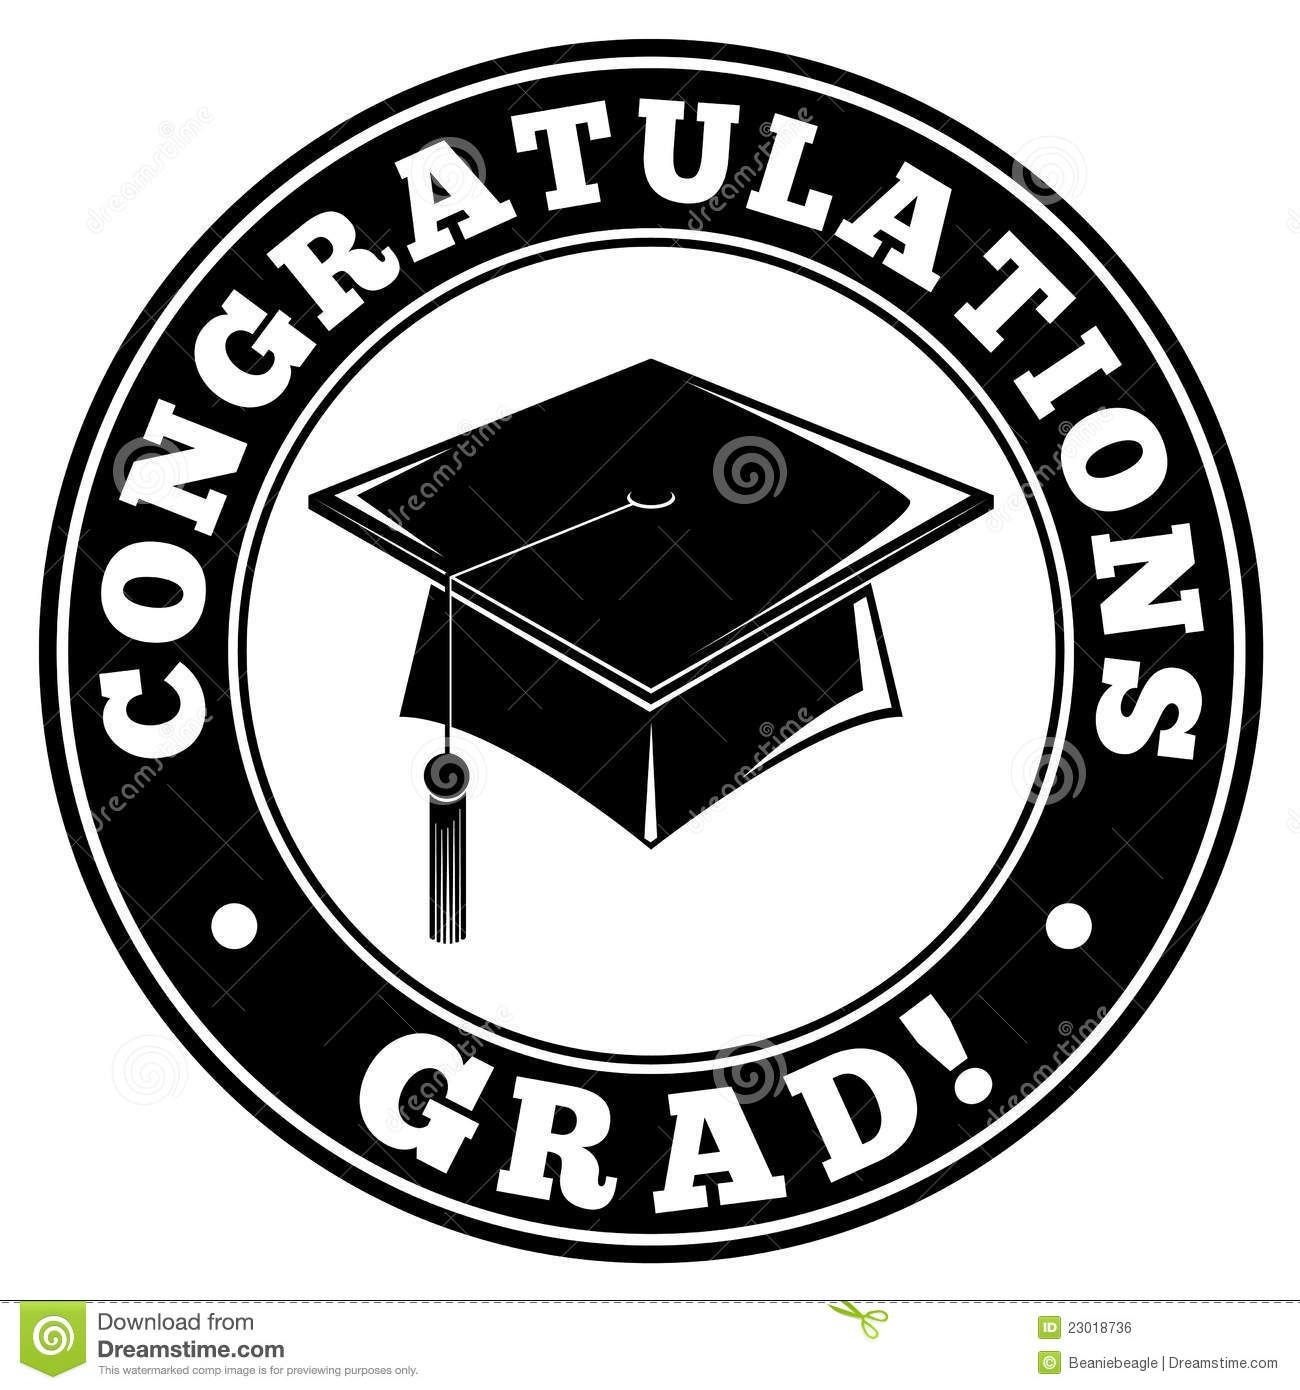 Congratulations Graduate Clip Art  Google Search  Money. Field Service Management Music Business Class. Brokerage Account Application. Wood Stove Certification Morgage Loan Officer. Injuries In Youth Sports Starwood Hotel Group. Discount Holiday Cards Patent Attorney Salary. Nursing Programs In San Antonio Texas. Bank Of North Dakota Student Loans. New York Chiropractic School